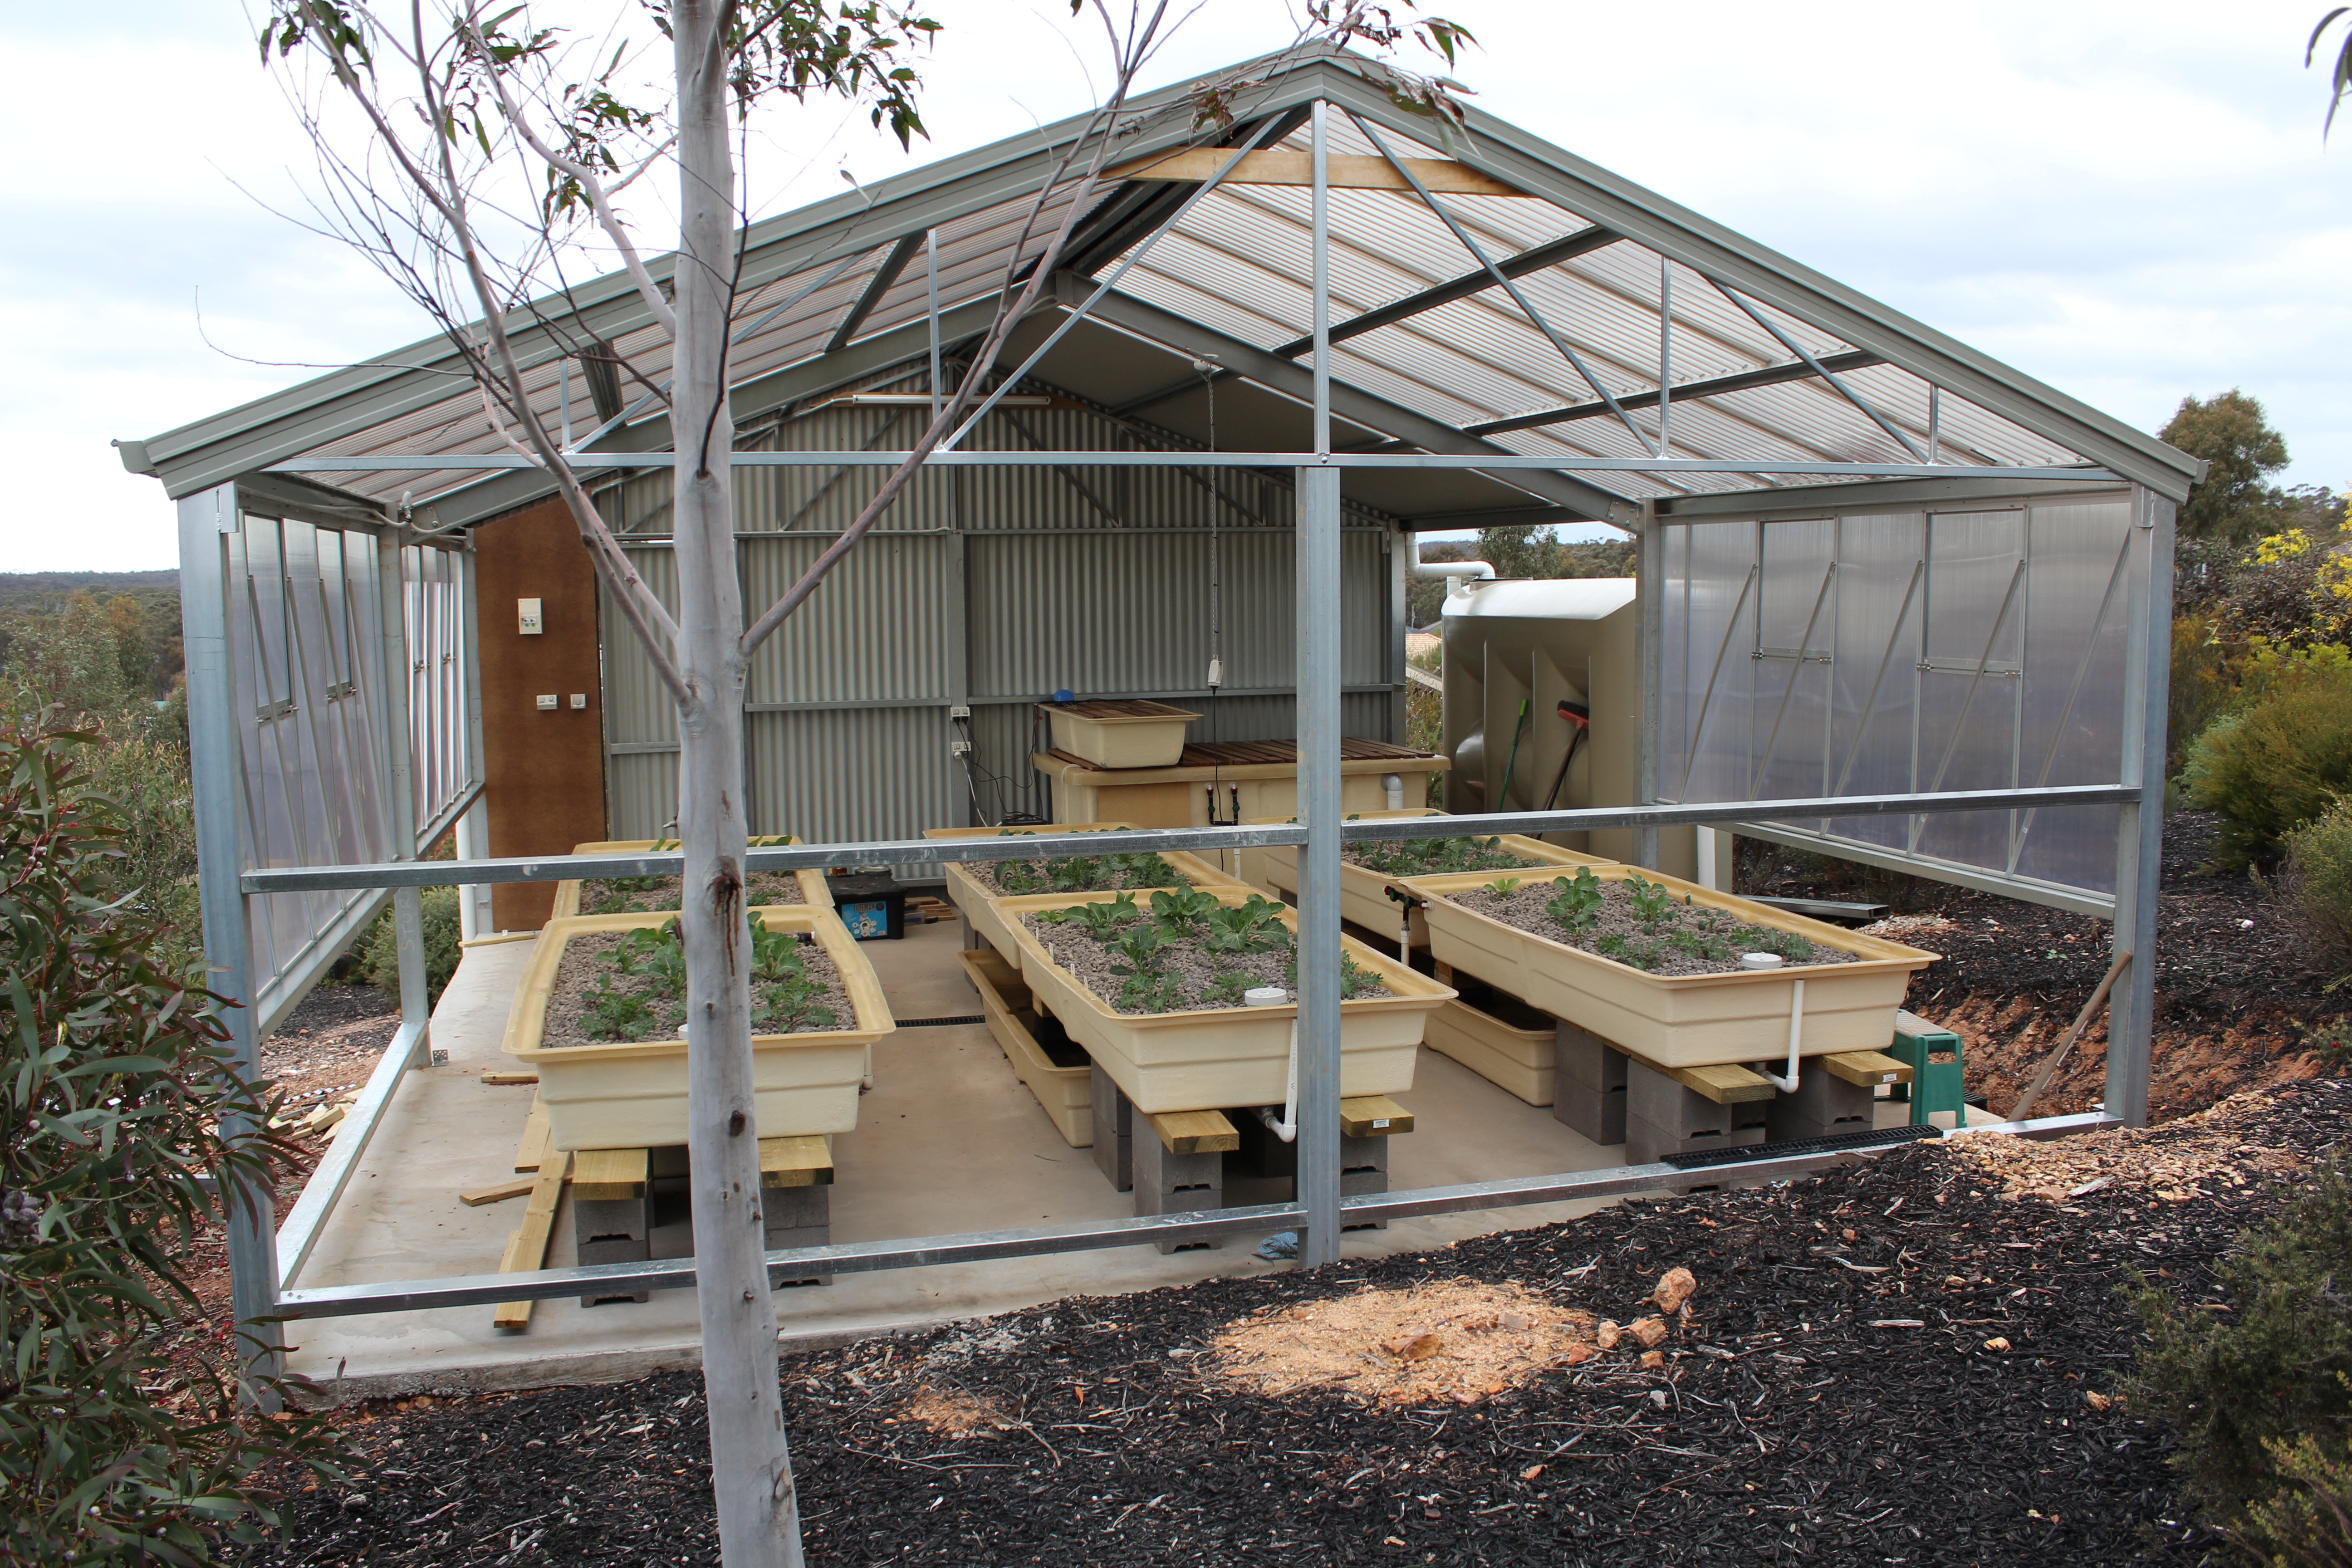 Backyard Aquaponics Greenhouse : Aquaponics ? Greenhouse nearing completion and system maturing well